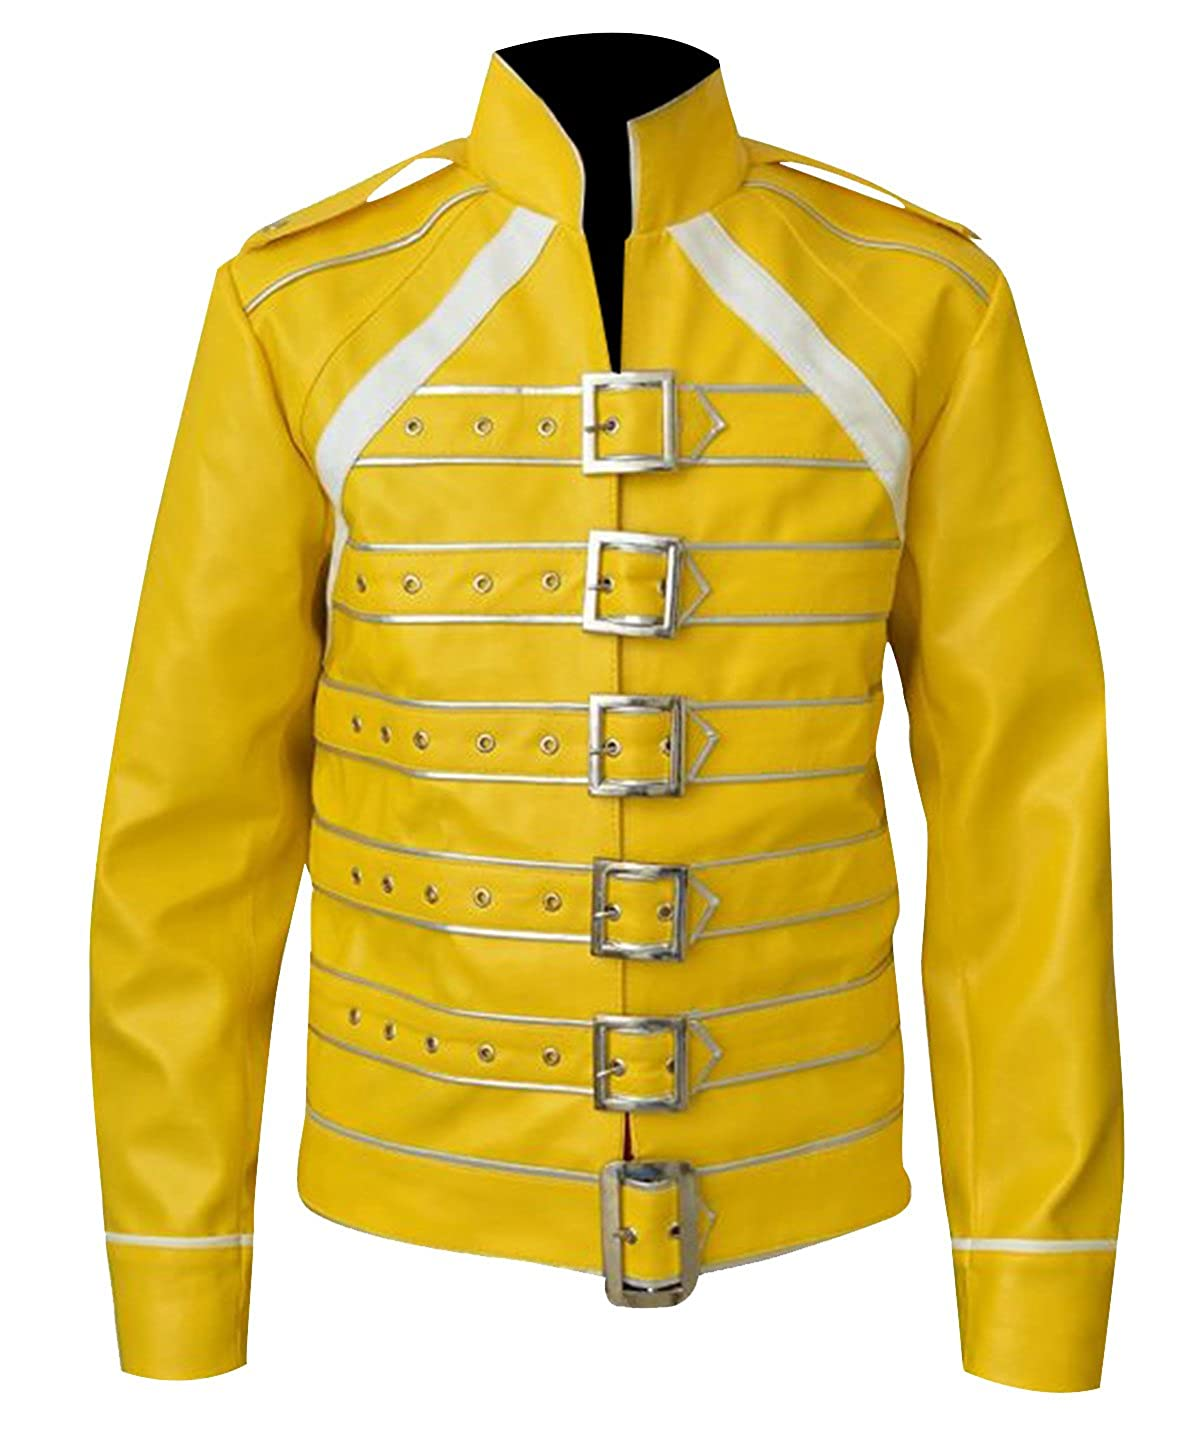 CHICAGO-FASHIONS Freddie Mercury Yellow Moto Faux Leather ...